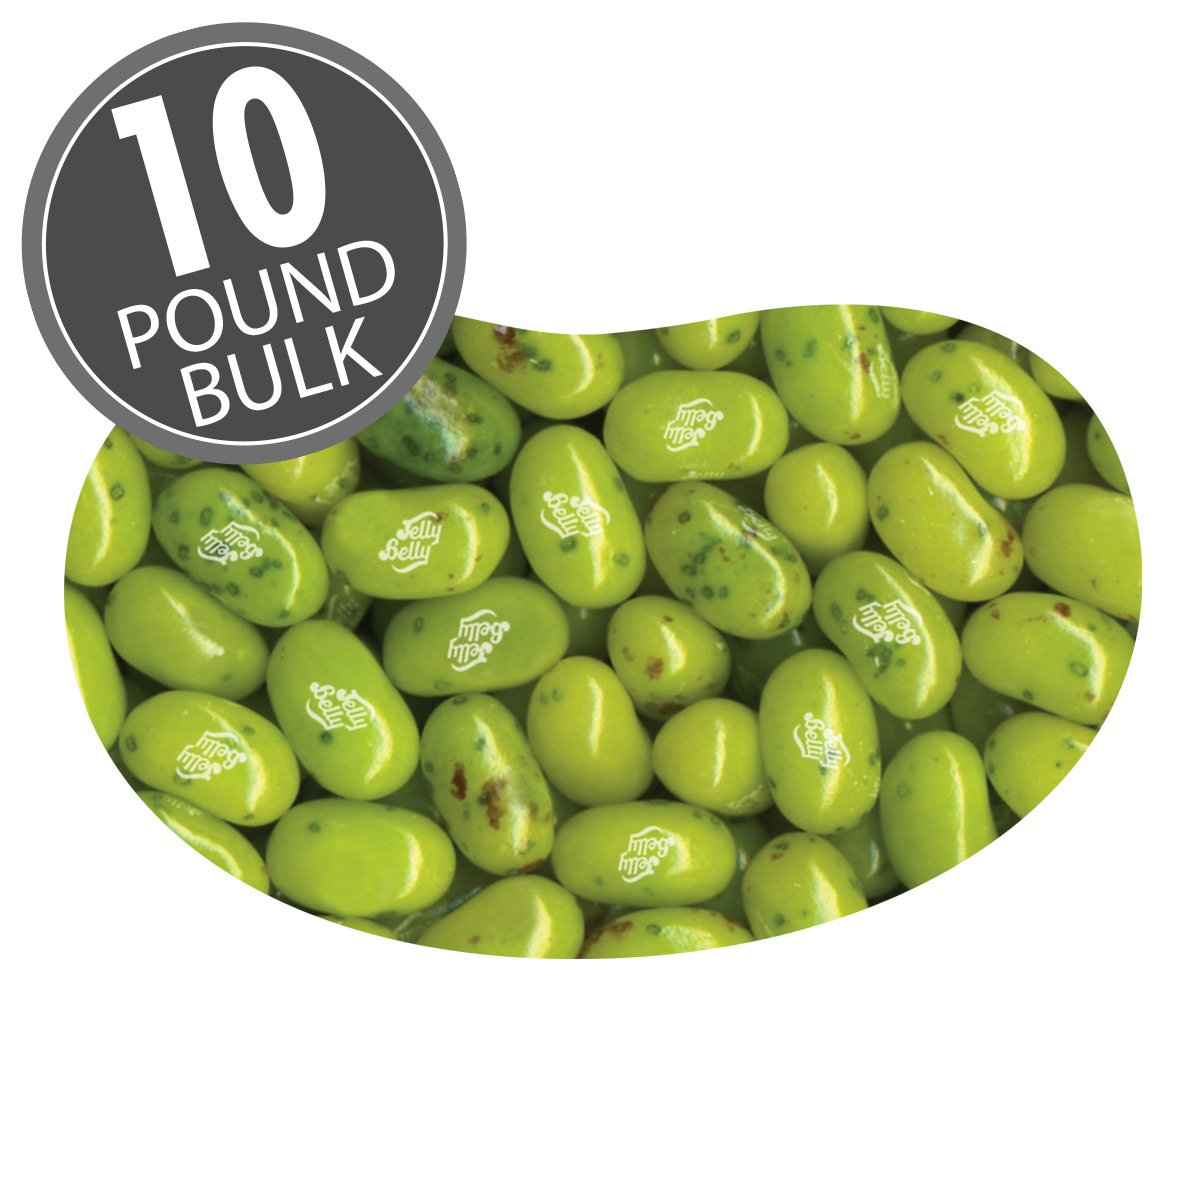 Jelly Belly Juicy Pear Jelly Beans, 10-Pound Box by Jelly Belly